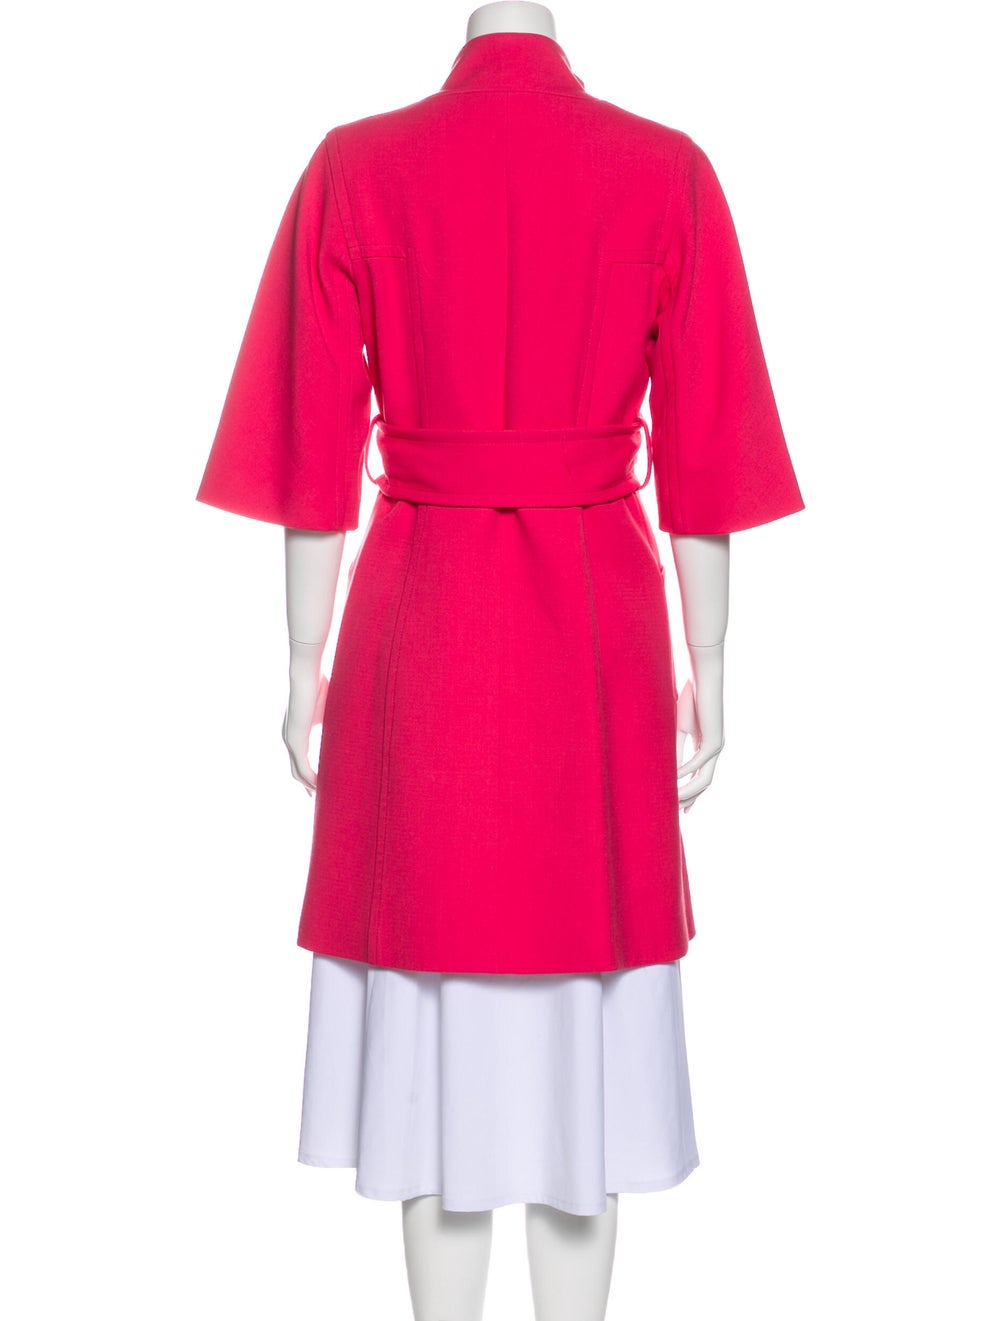 Milly Trench Coat Pink - image 3